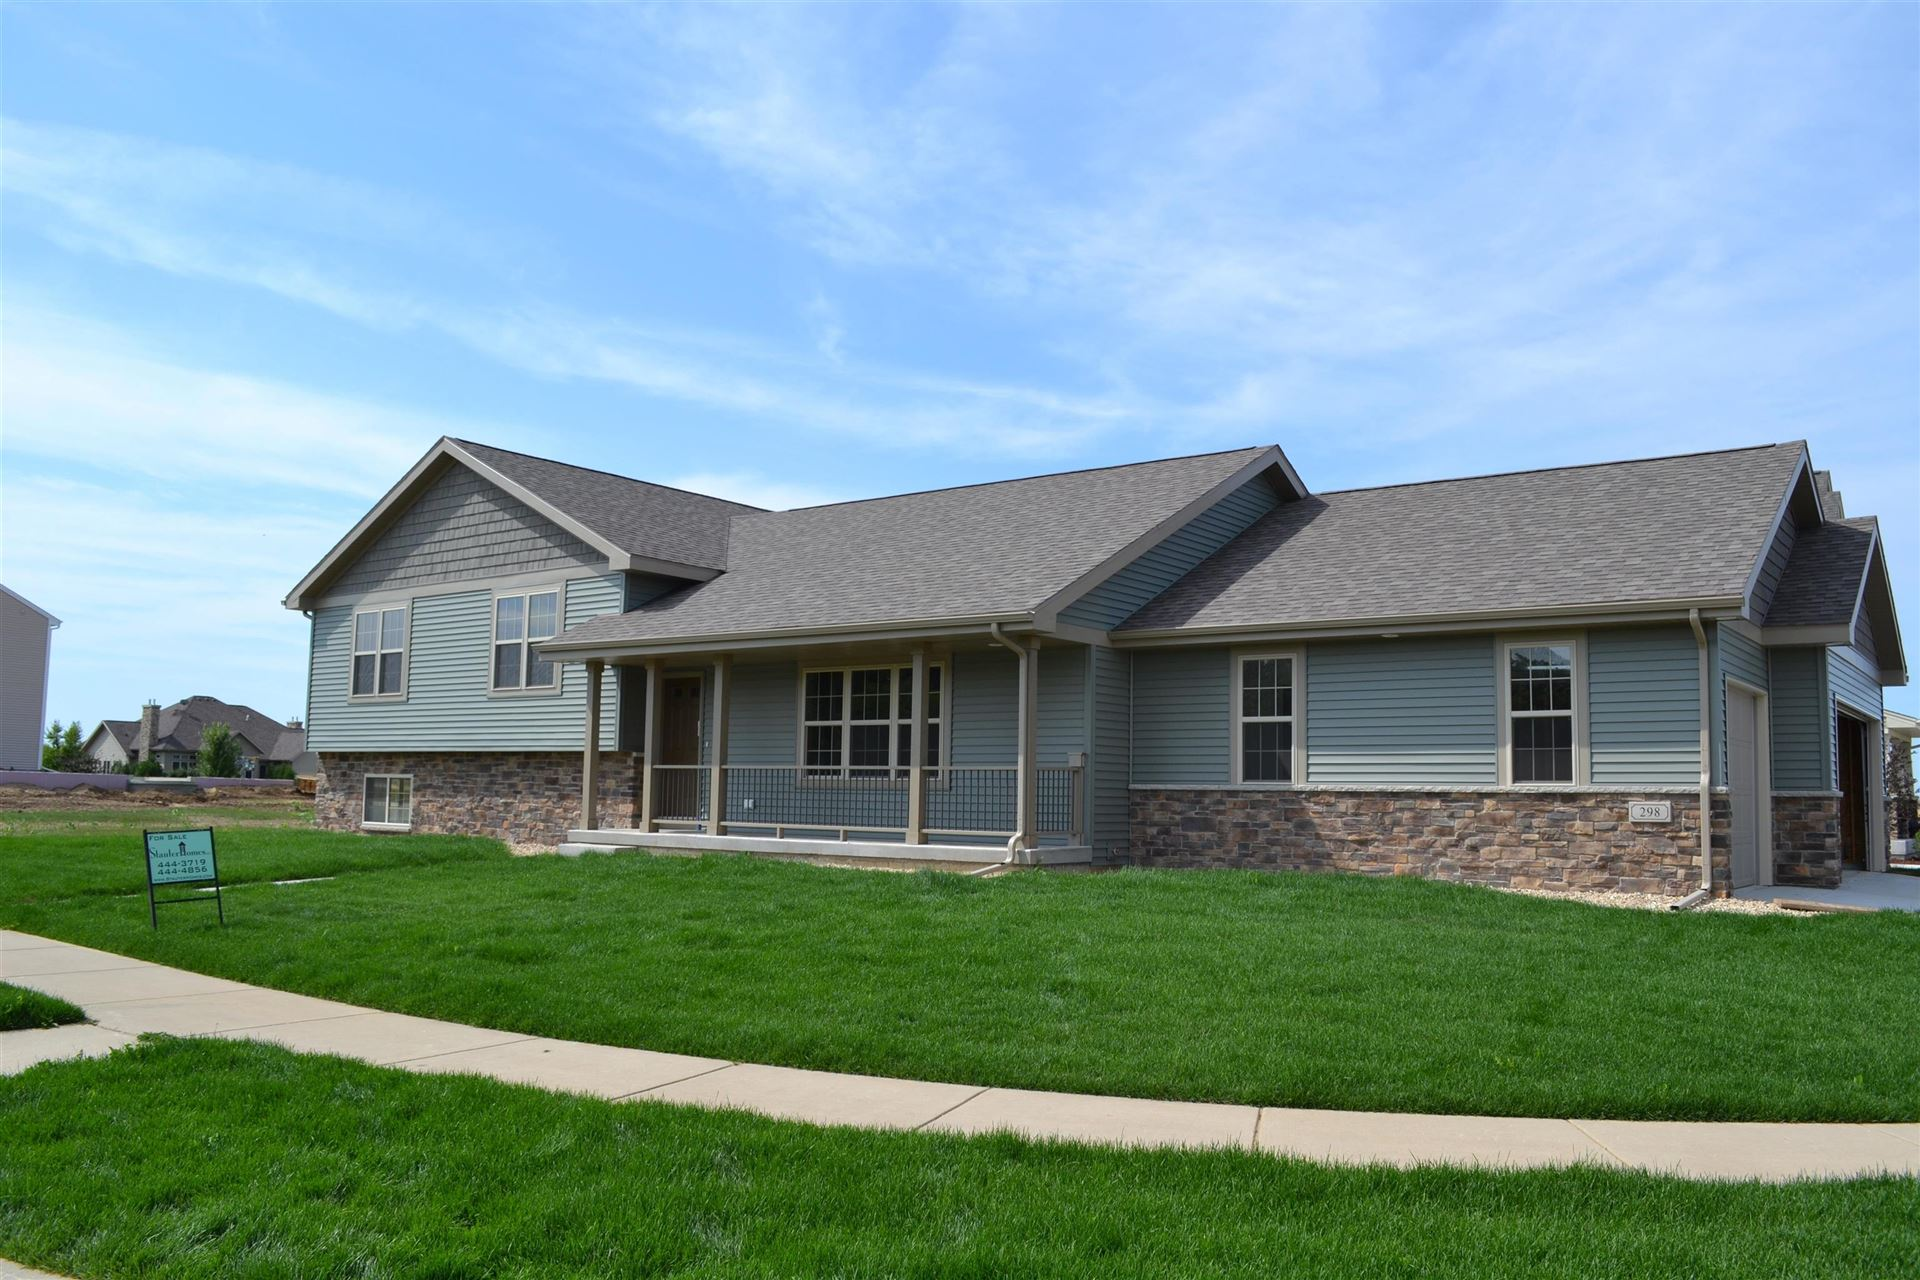 3030 Valley St, Black Earth, WI 53515 - #: 1919715